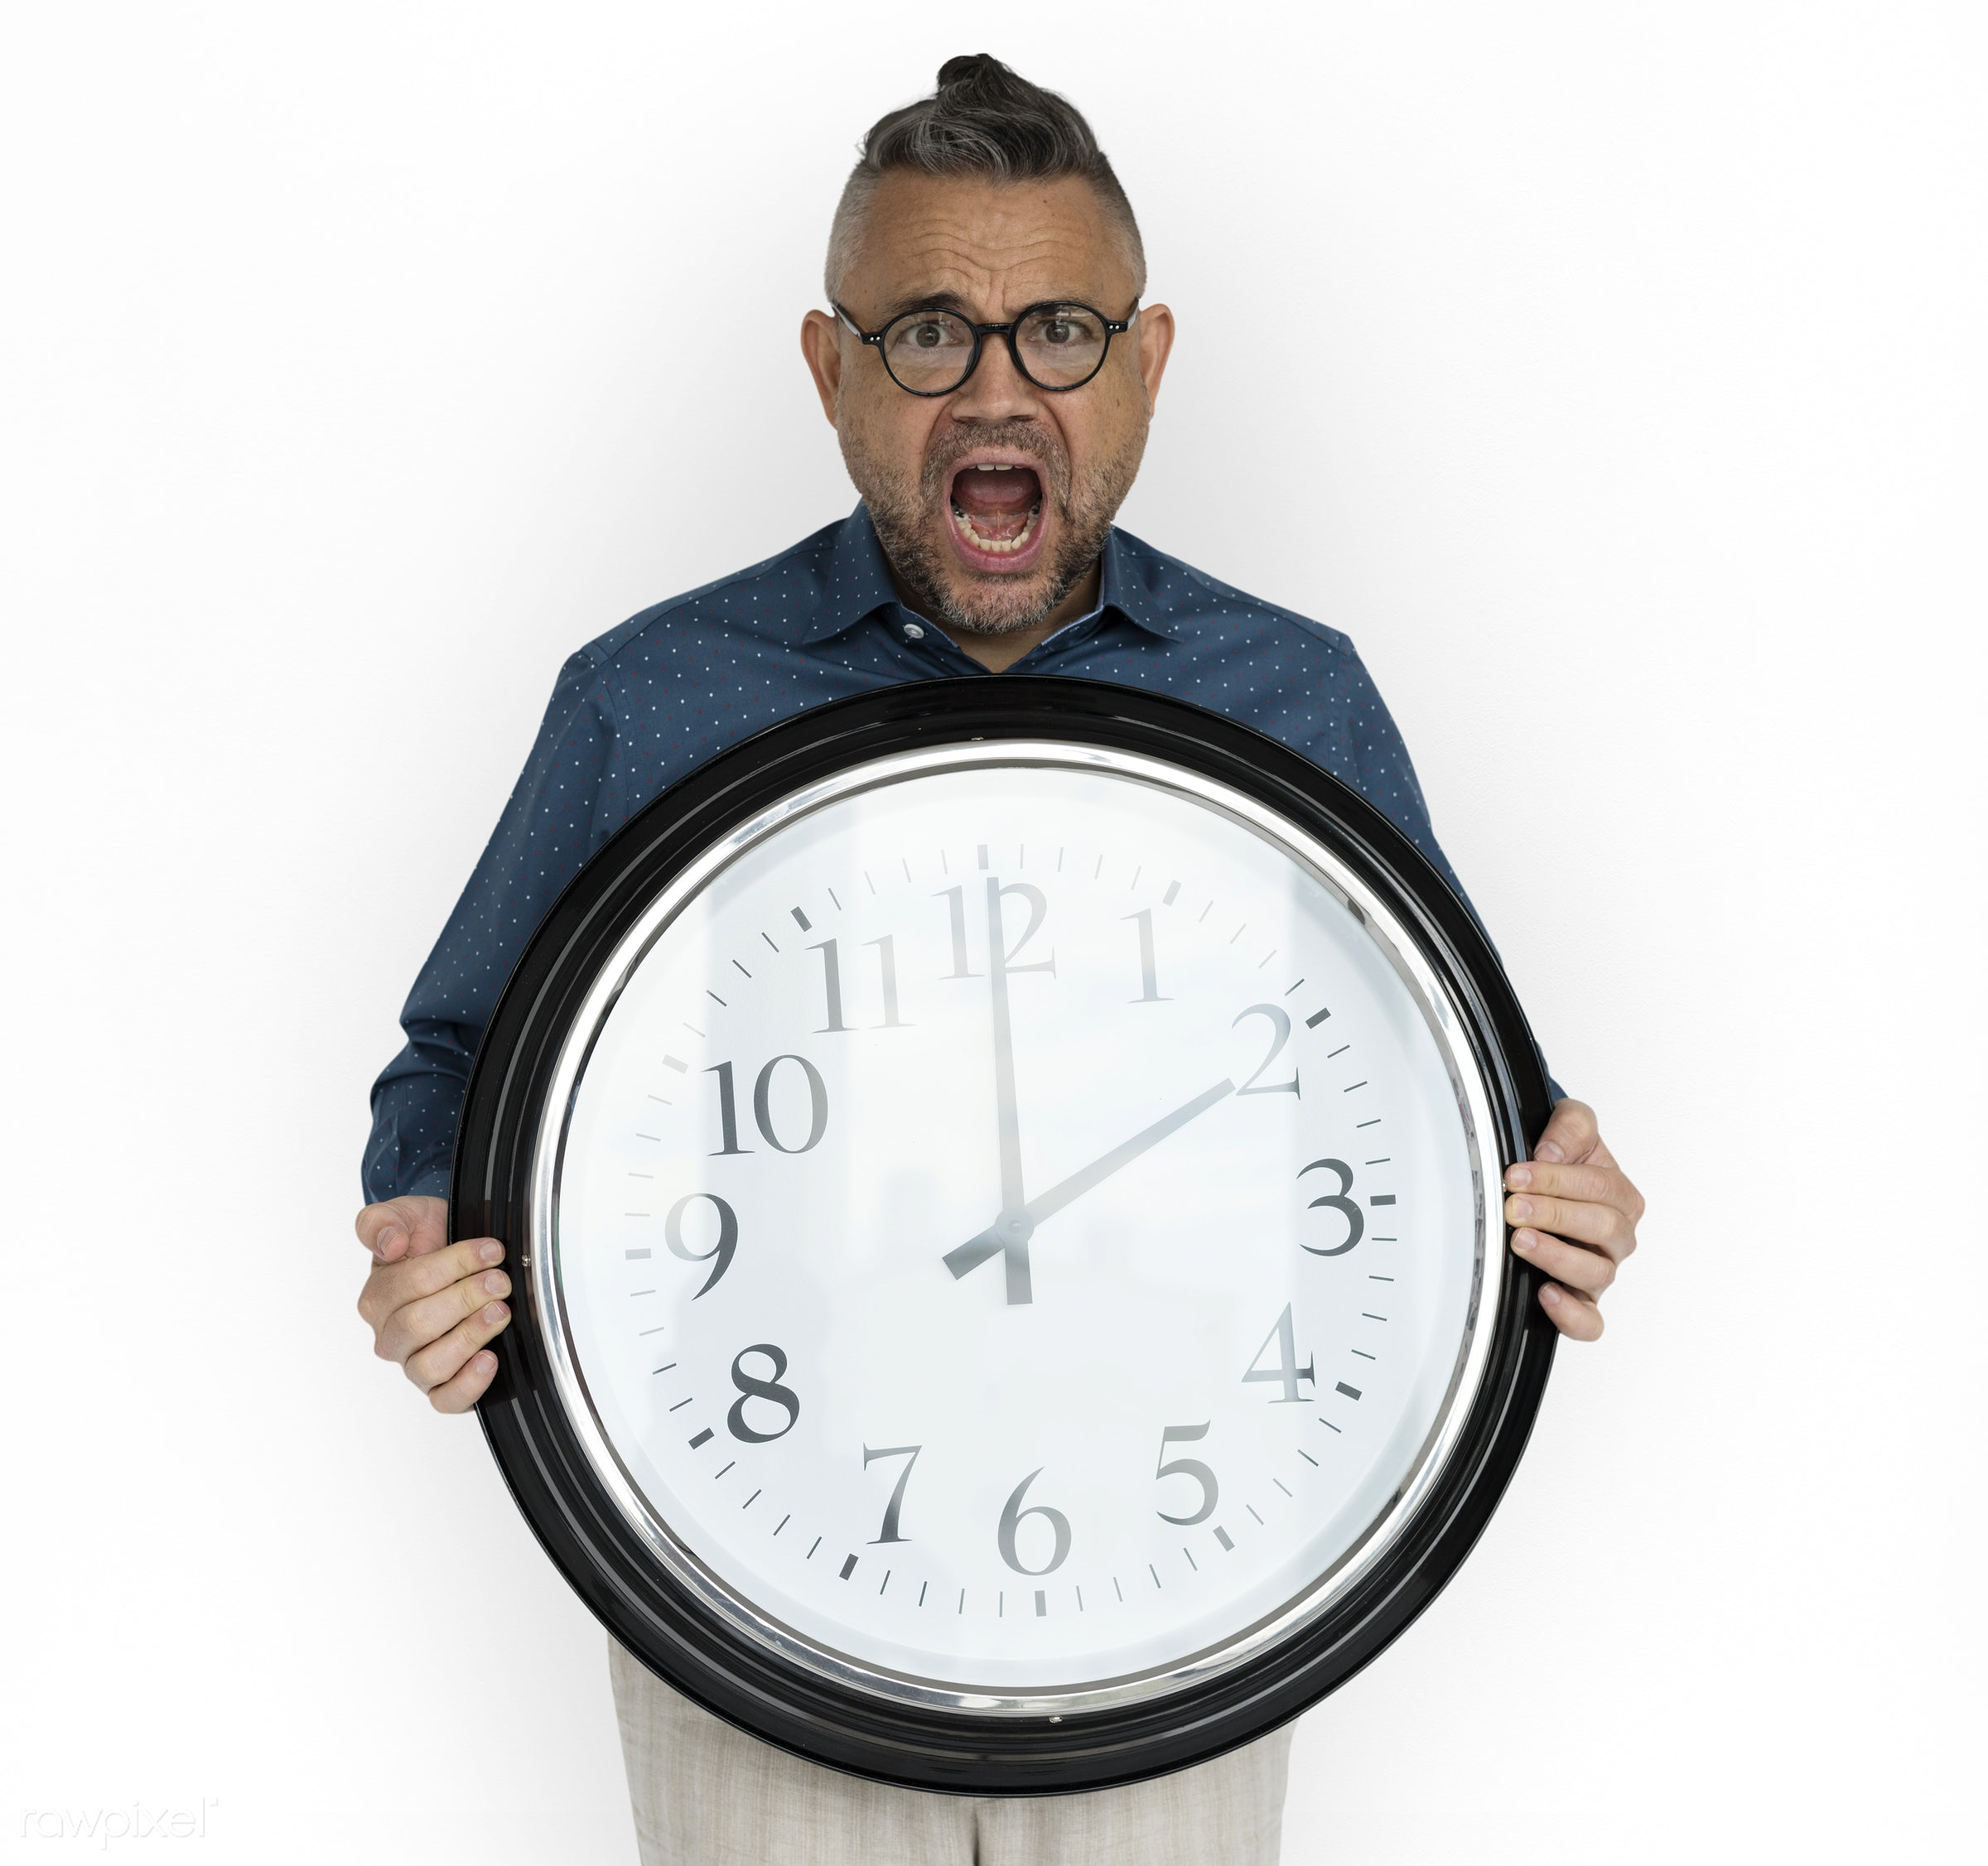 studio, overworked, expression, person, manager, people, race, time, lifestyle, isolated, emotion, executive, countdown,...